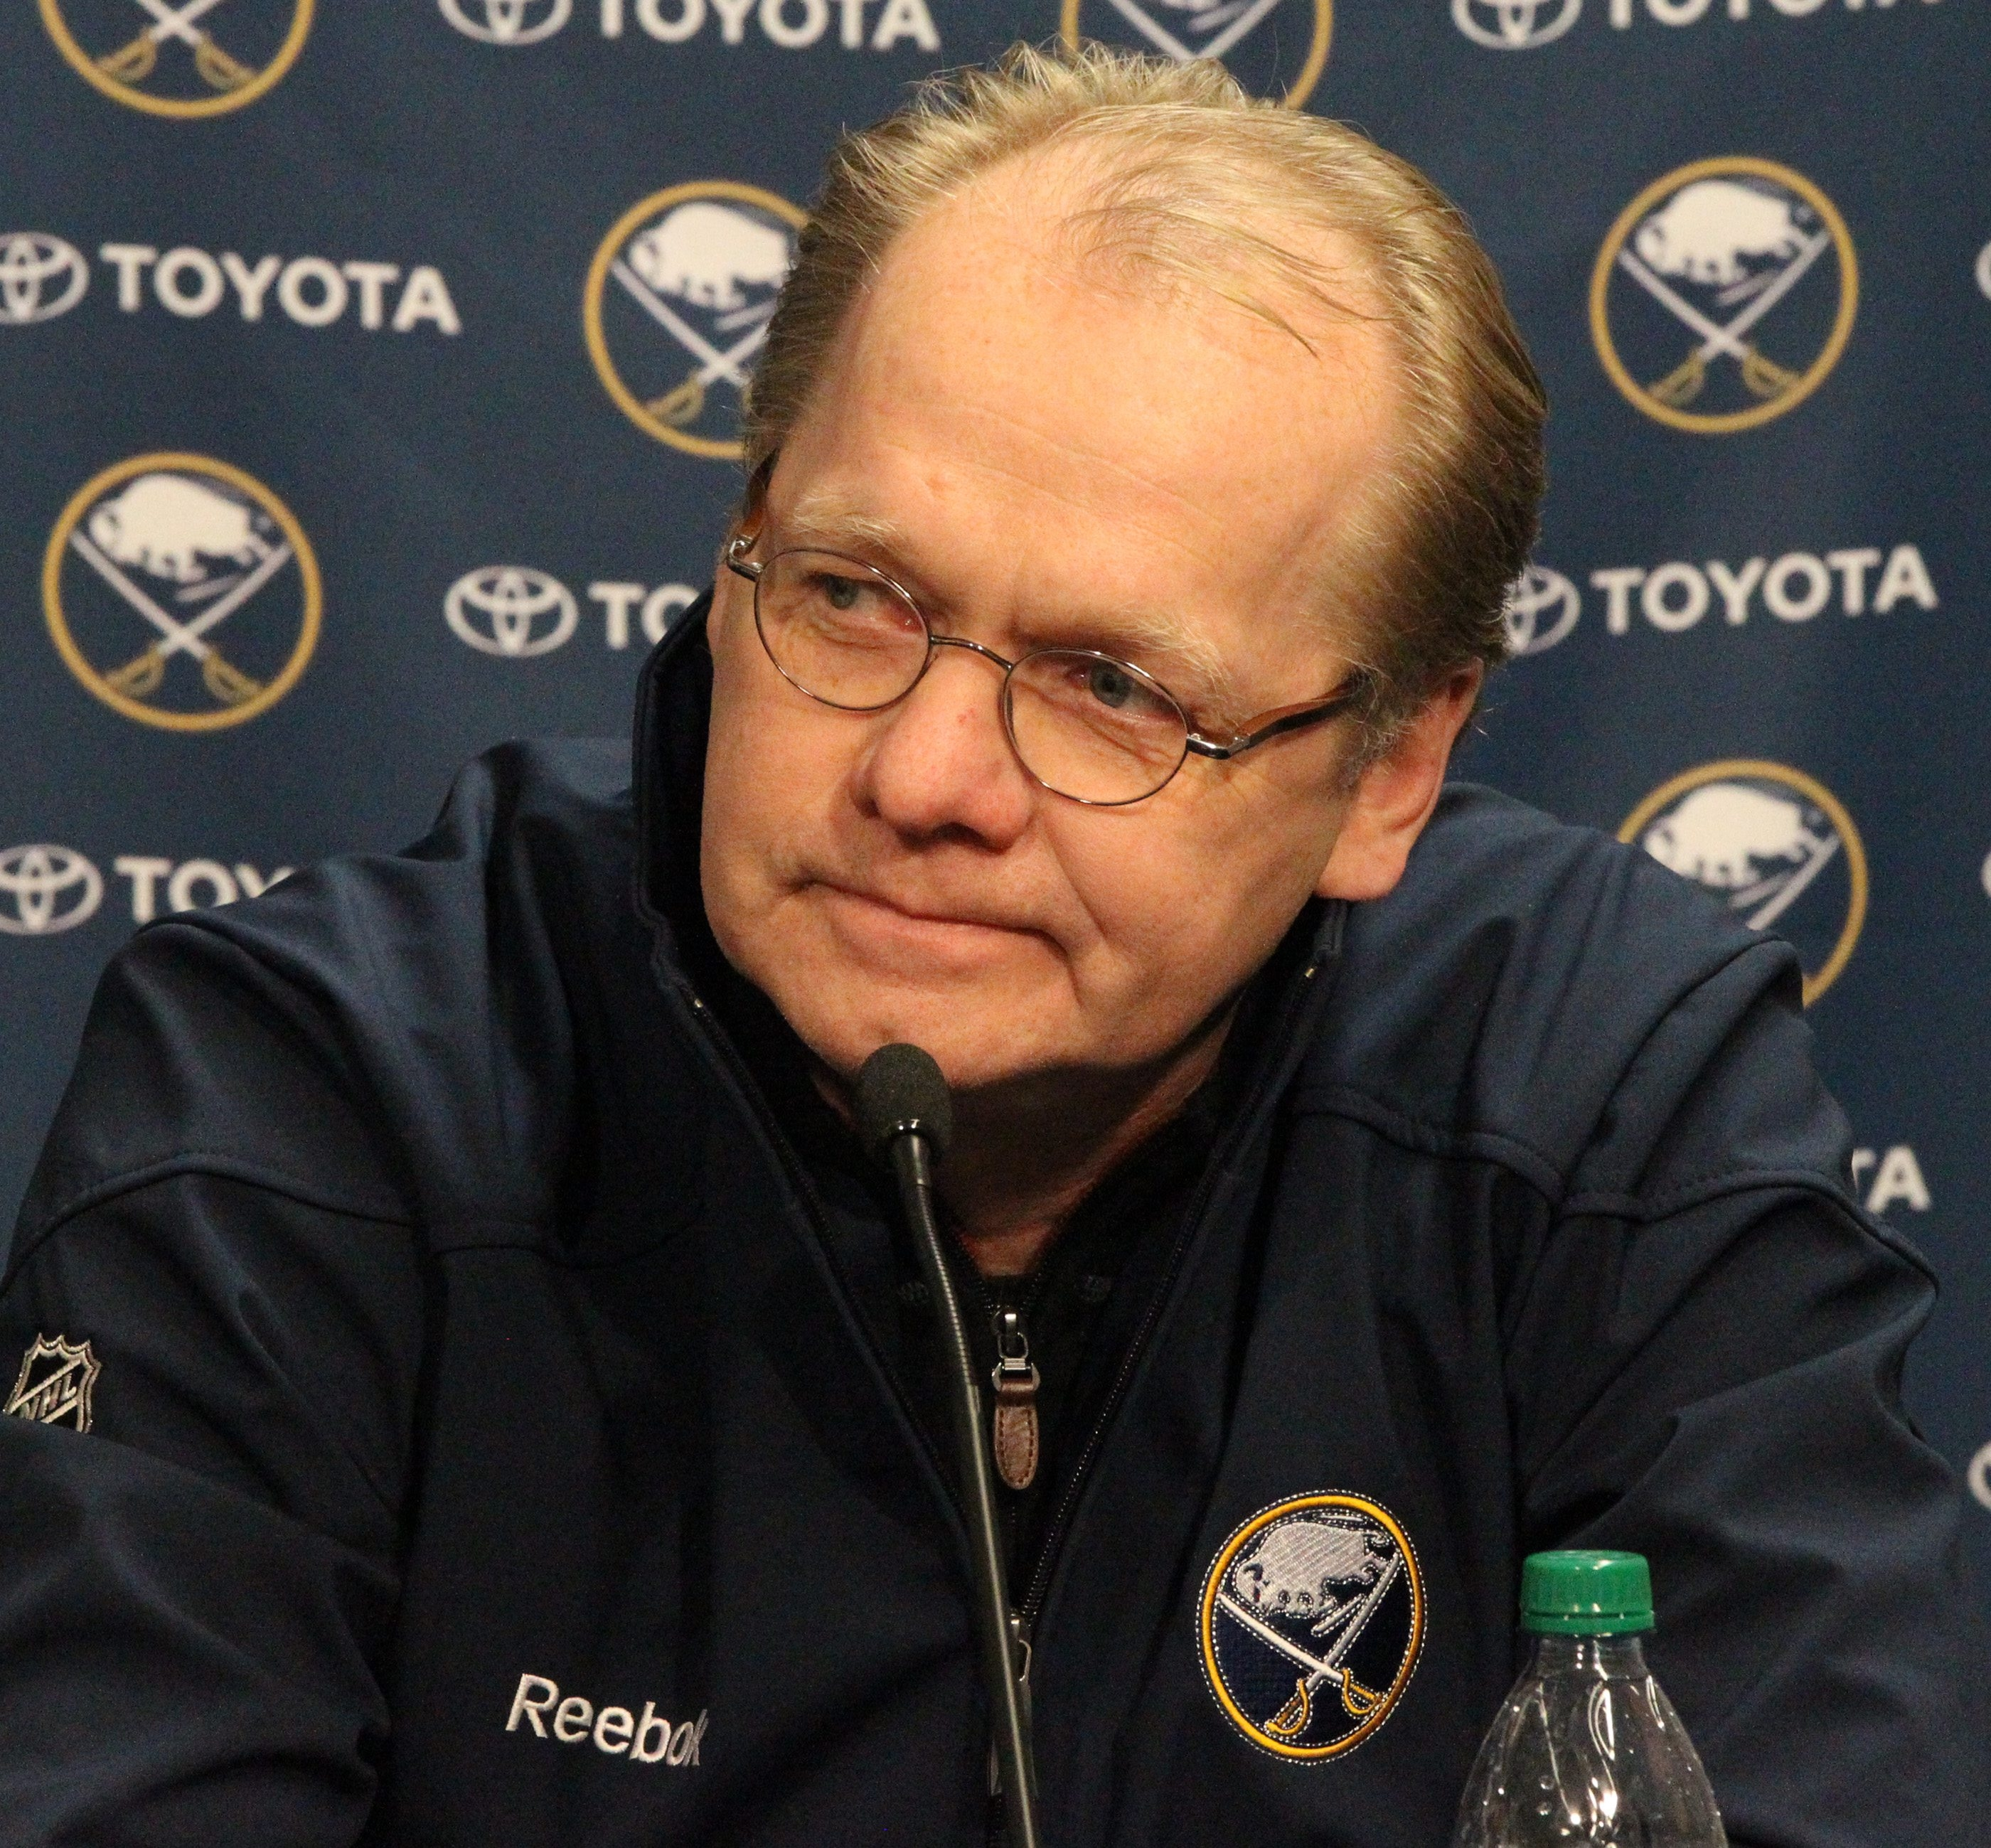 Darcy Regier's passion for his guys and failing to assess their talent level helped lead to his dismissal.